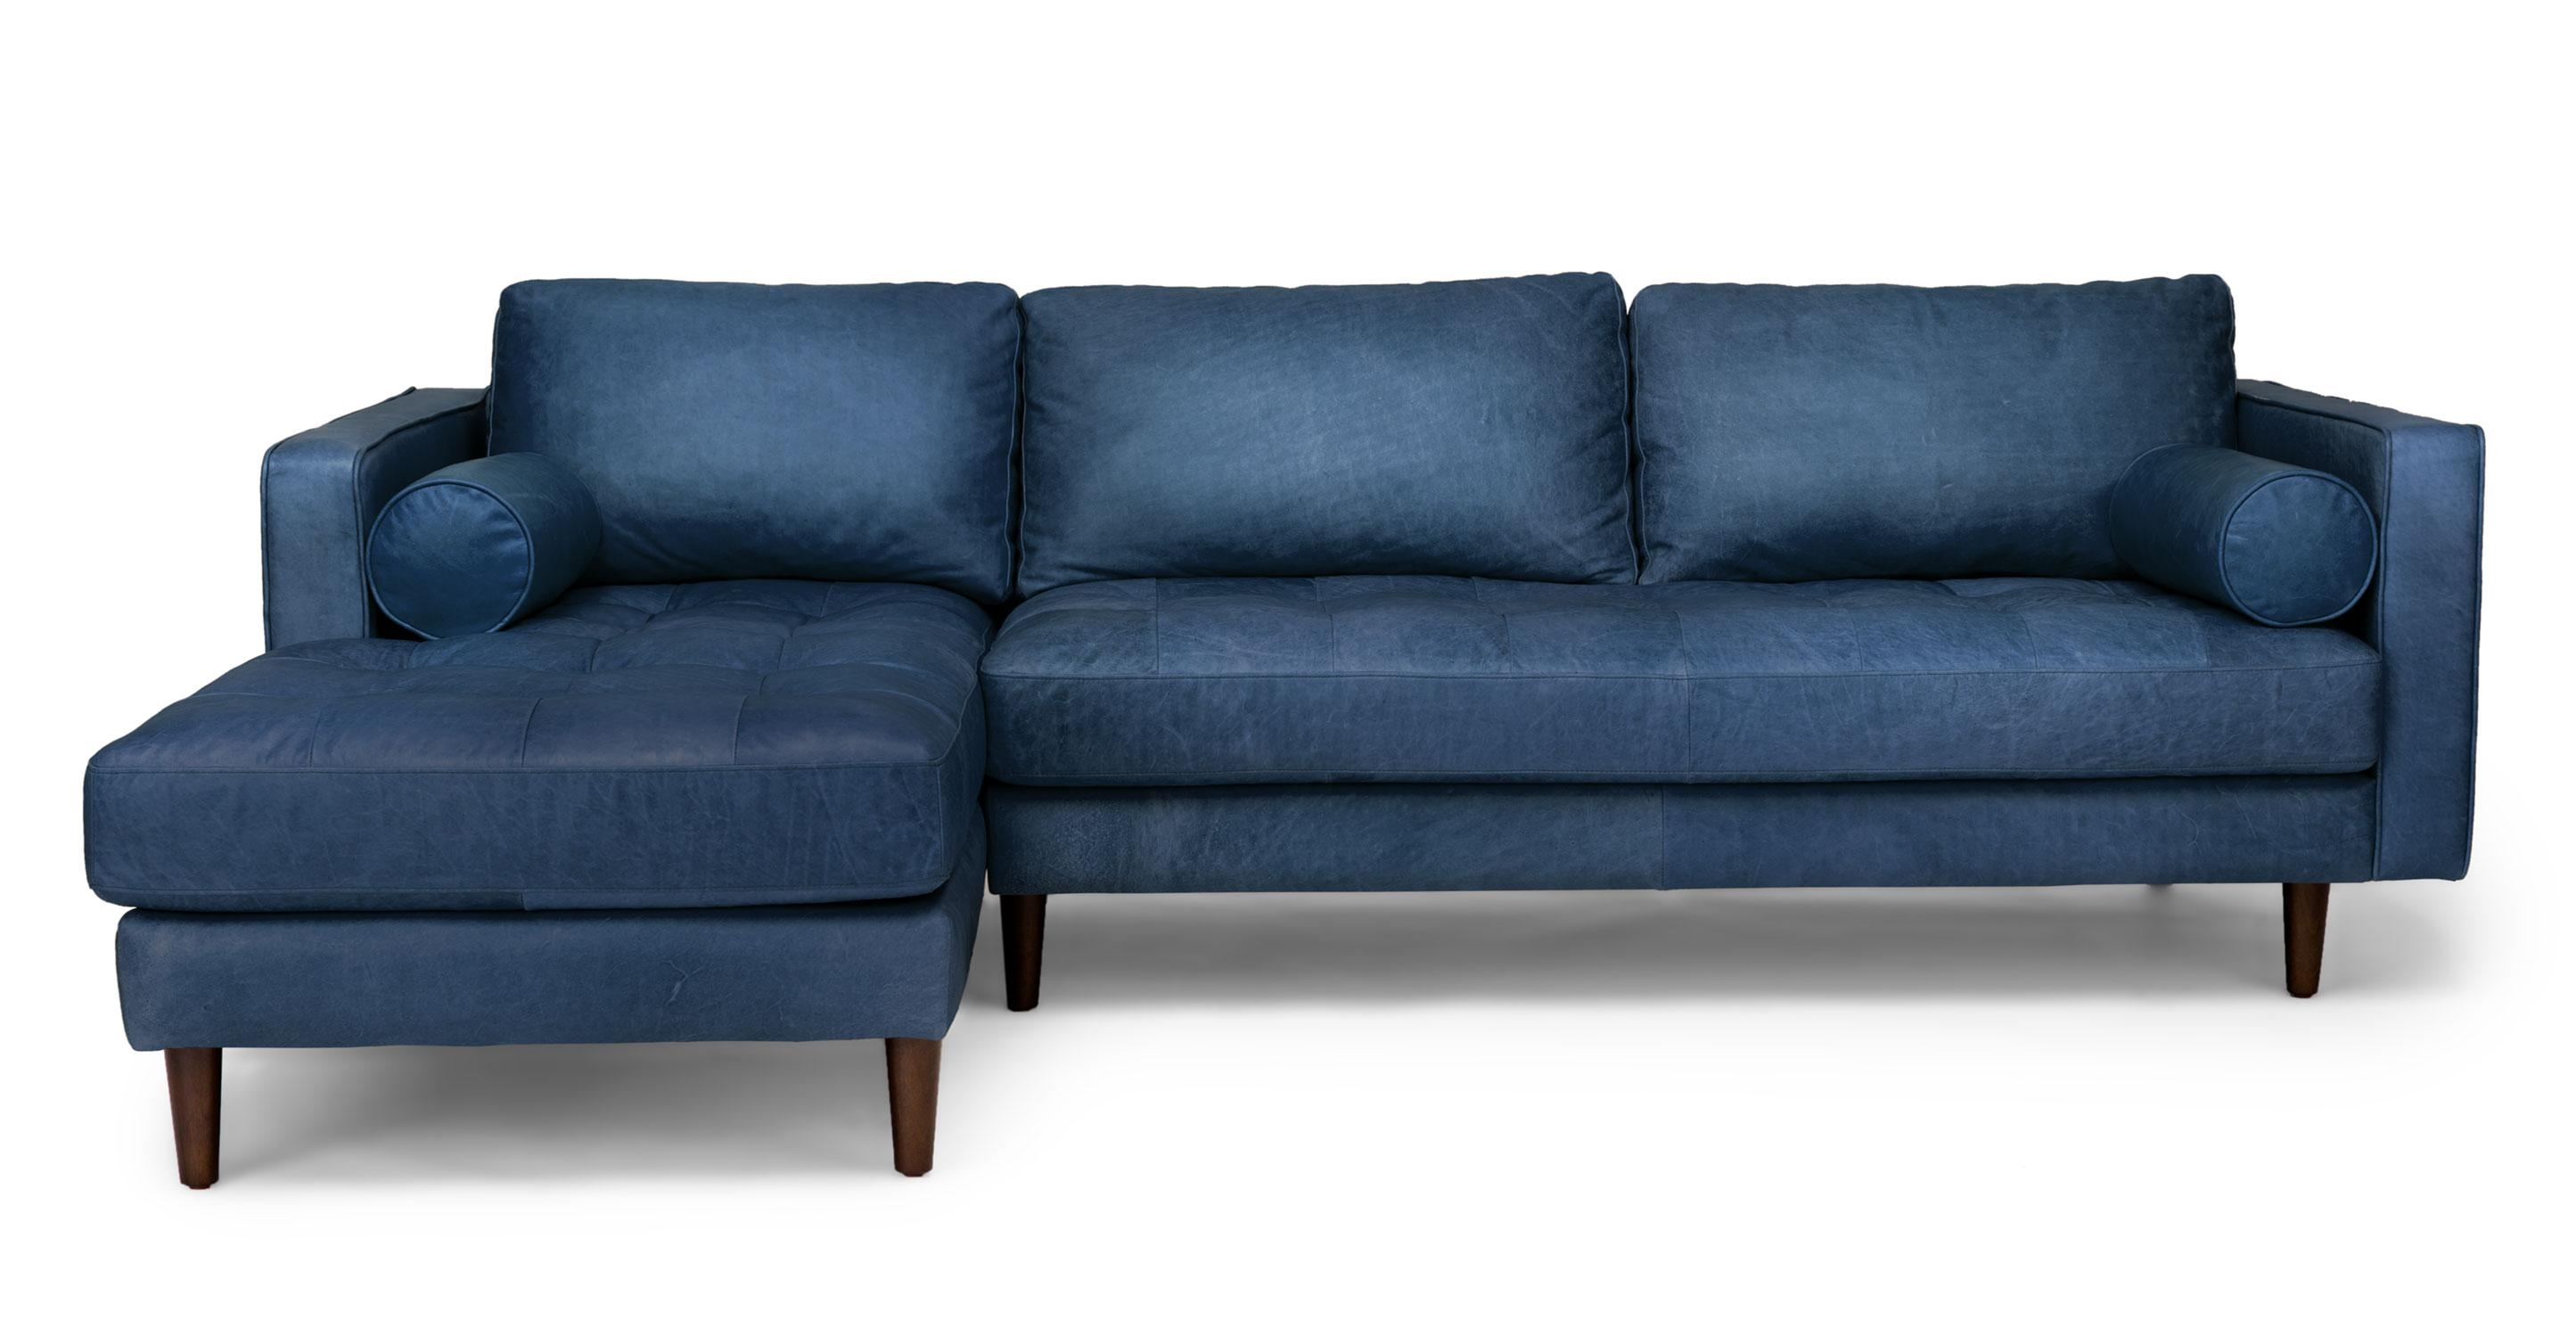 Sofas : Wonderful Leather Trend Sofa Bamboo Sofa Hm Richards Intended For Bambo Sofas (Image 16 of 22)